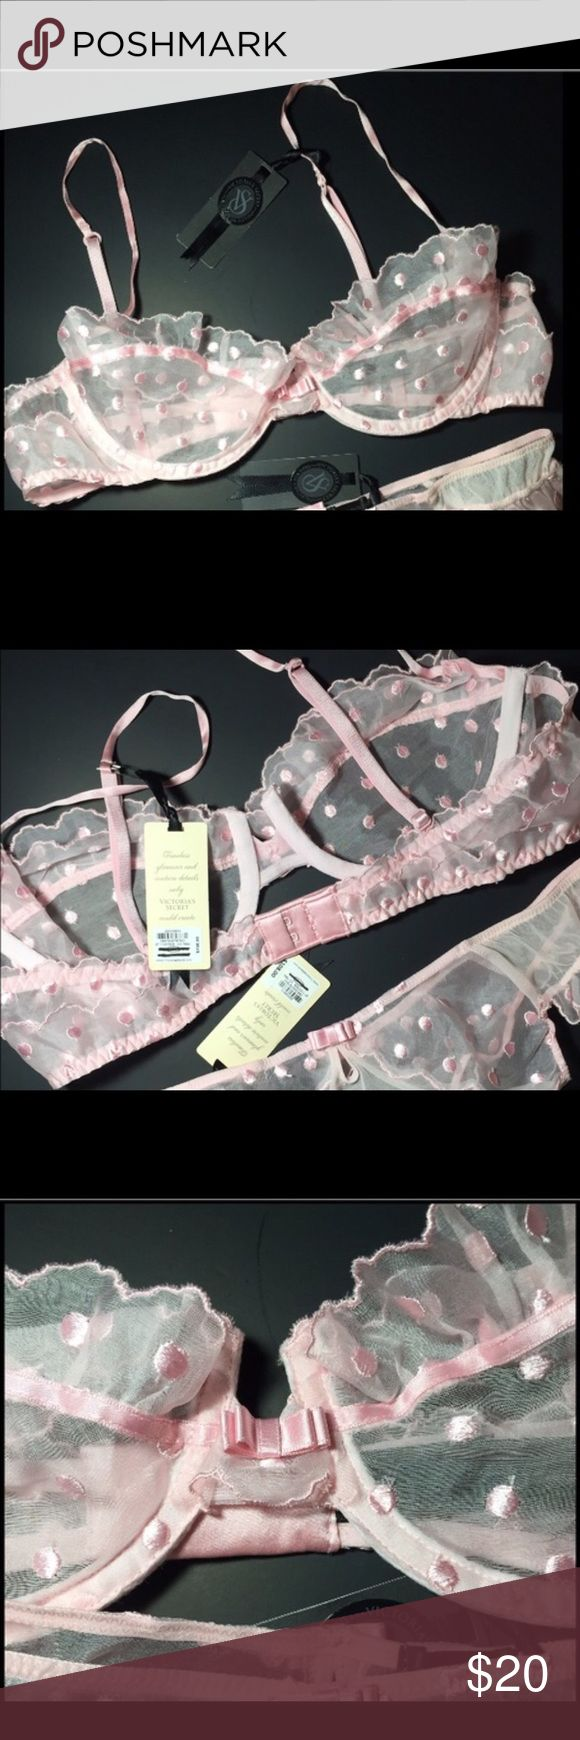 New Victoria's Secret bra Limited Edition 34C Brand-new with original tags Victoria's secret Designer Collection unlined bra. 100% silk. Sheer pink with pink dots and pink bowtie ribbon. 34C CLASSIC. Beautiful Victoria's Secret Intimates & Sleepwear Bras